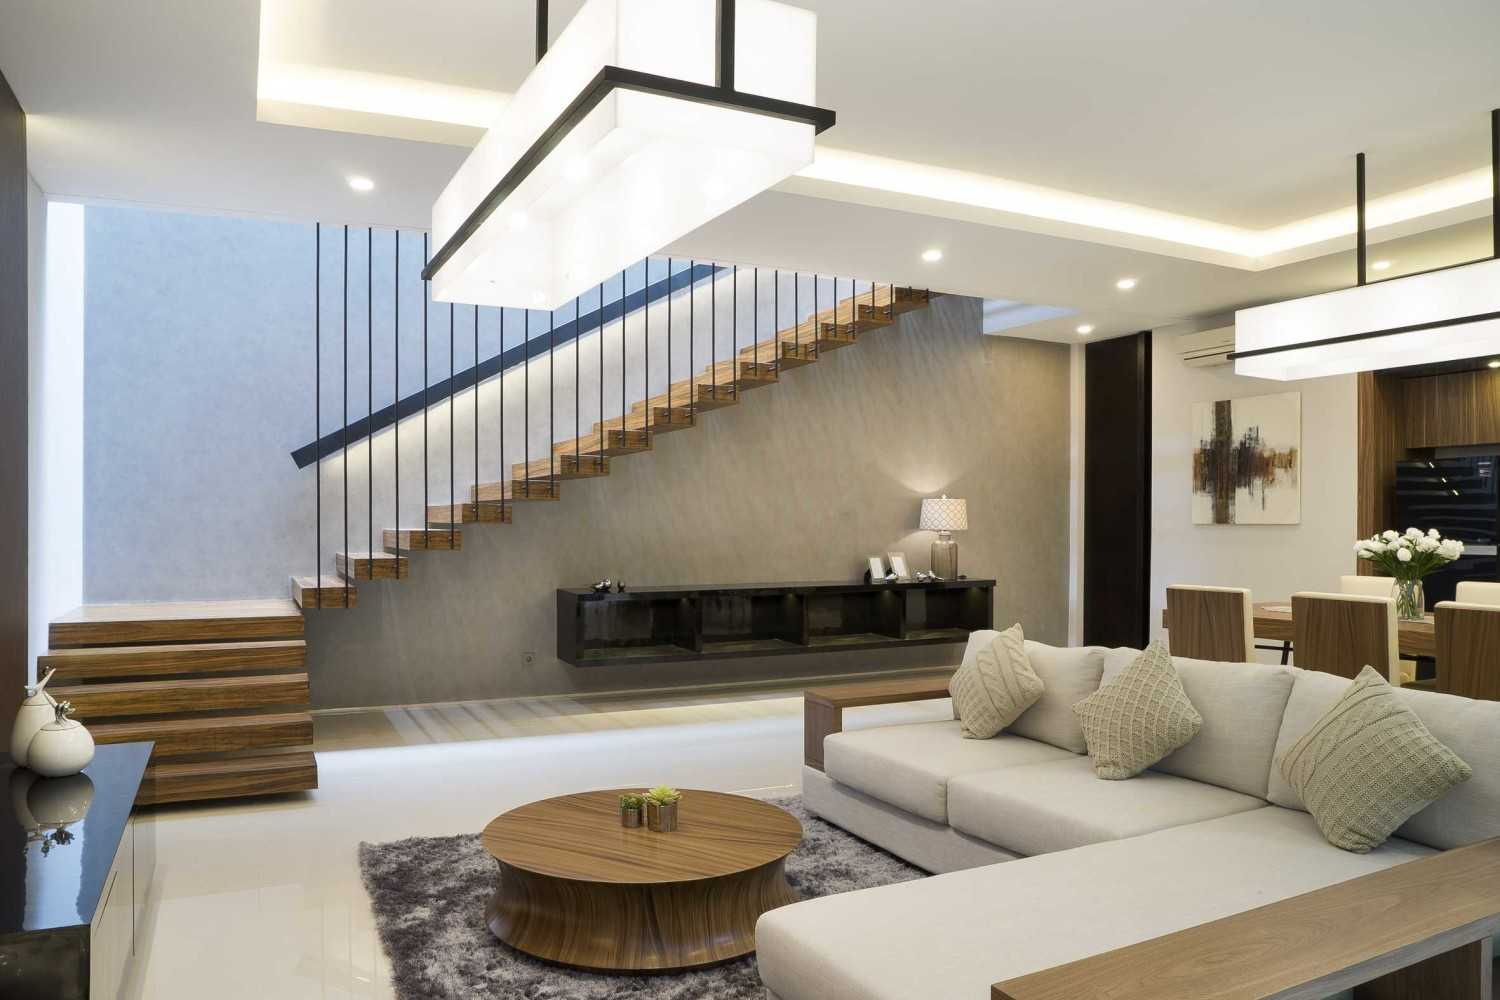 """Simple Projects Architecture """"s"""" House Pakuwon Indah, Surabaya - Indonesia Pakuwon Indah, Surabaya - Indonesia Living Room  33113"""